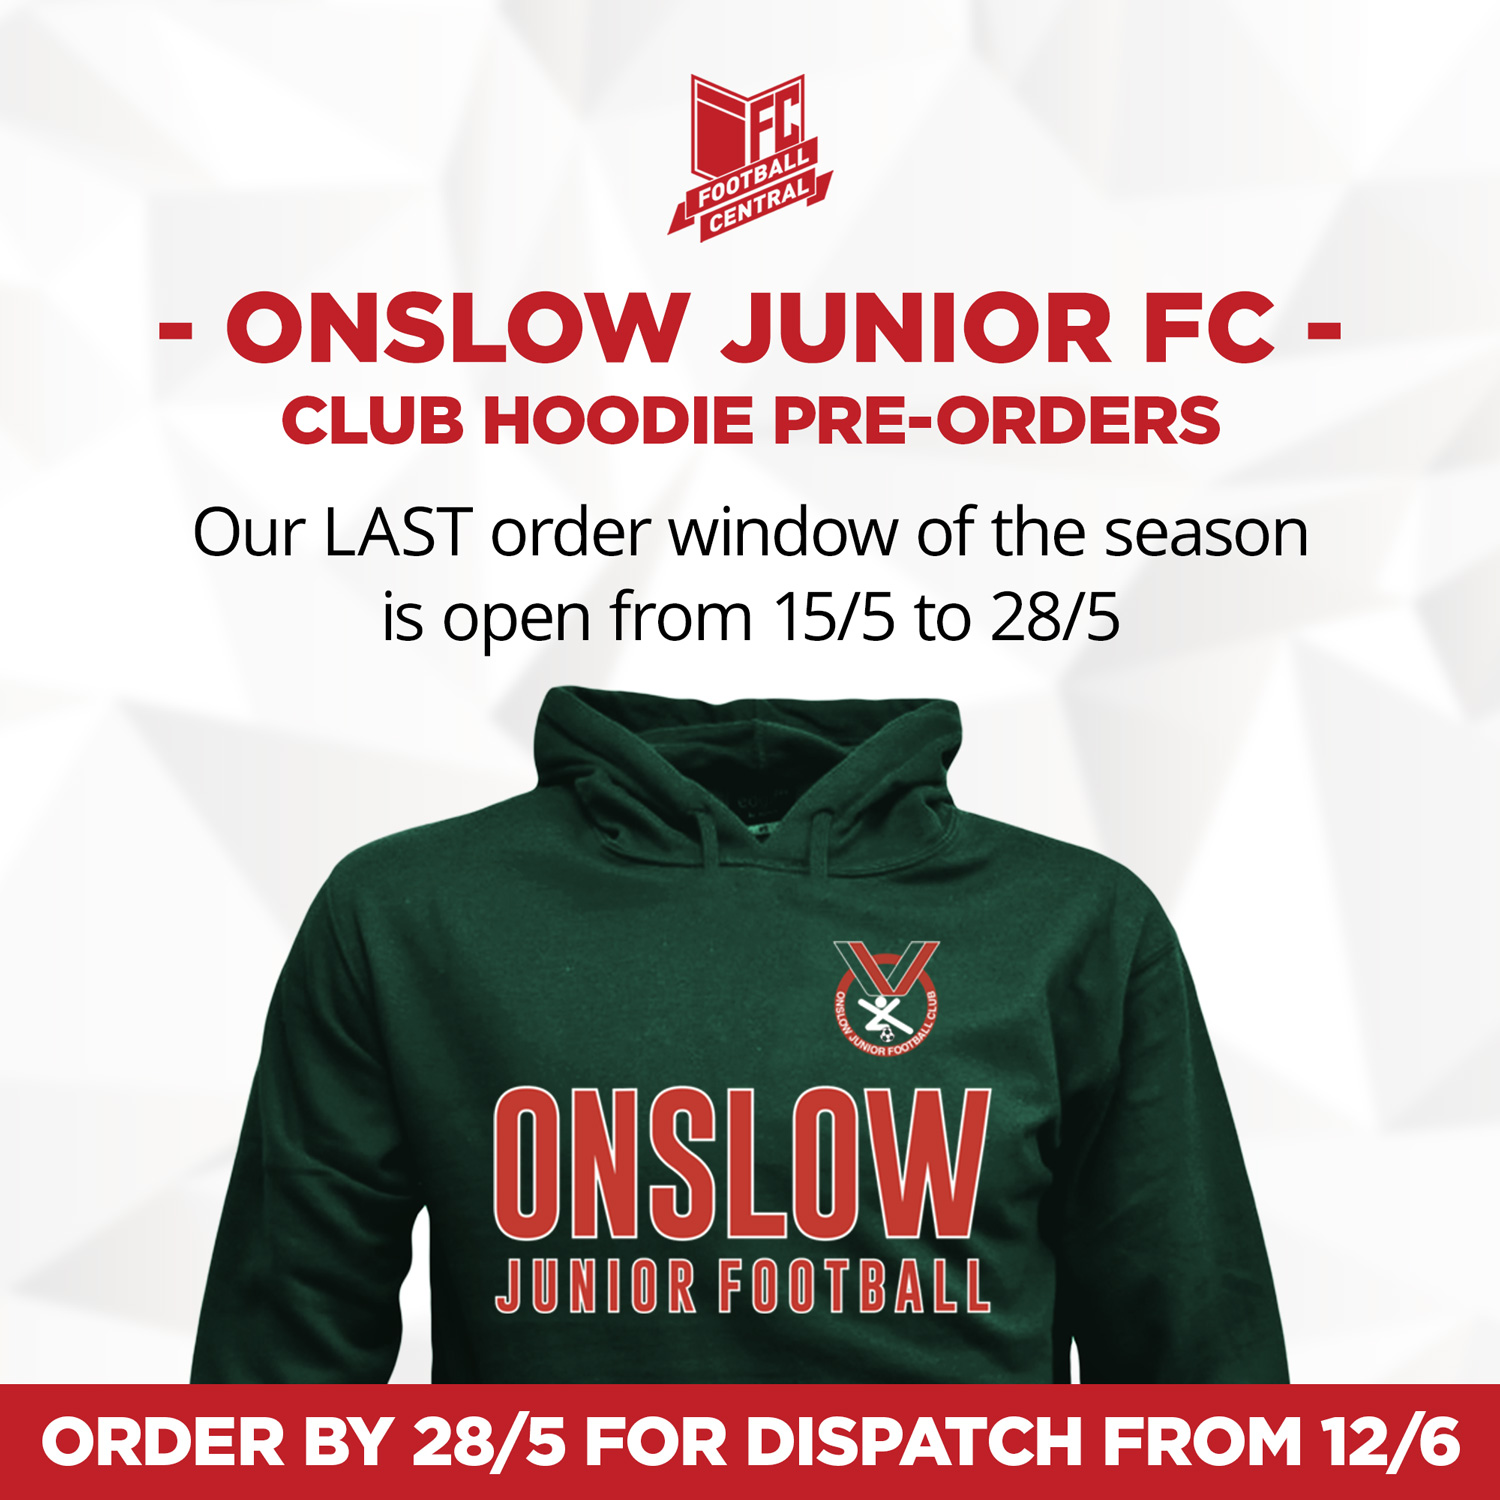 Onslow-Club-Hoodies-Next-Window-0517-1500 1